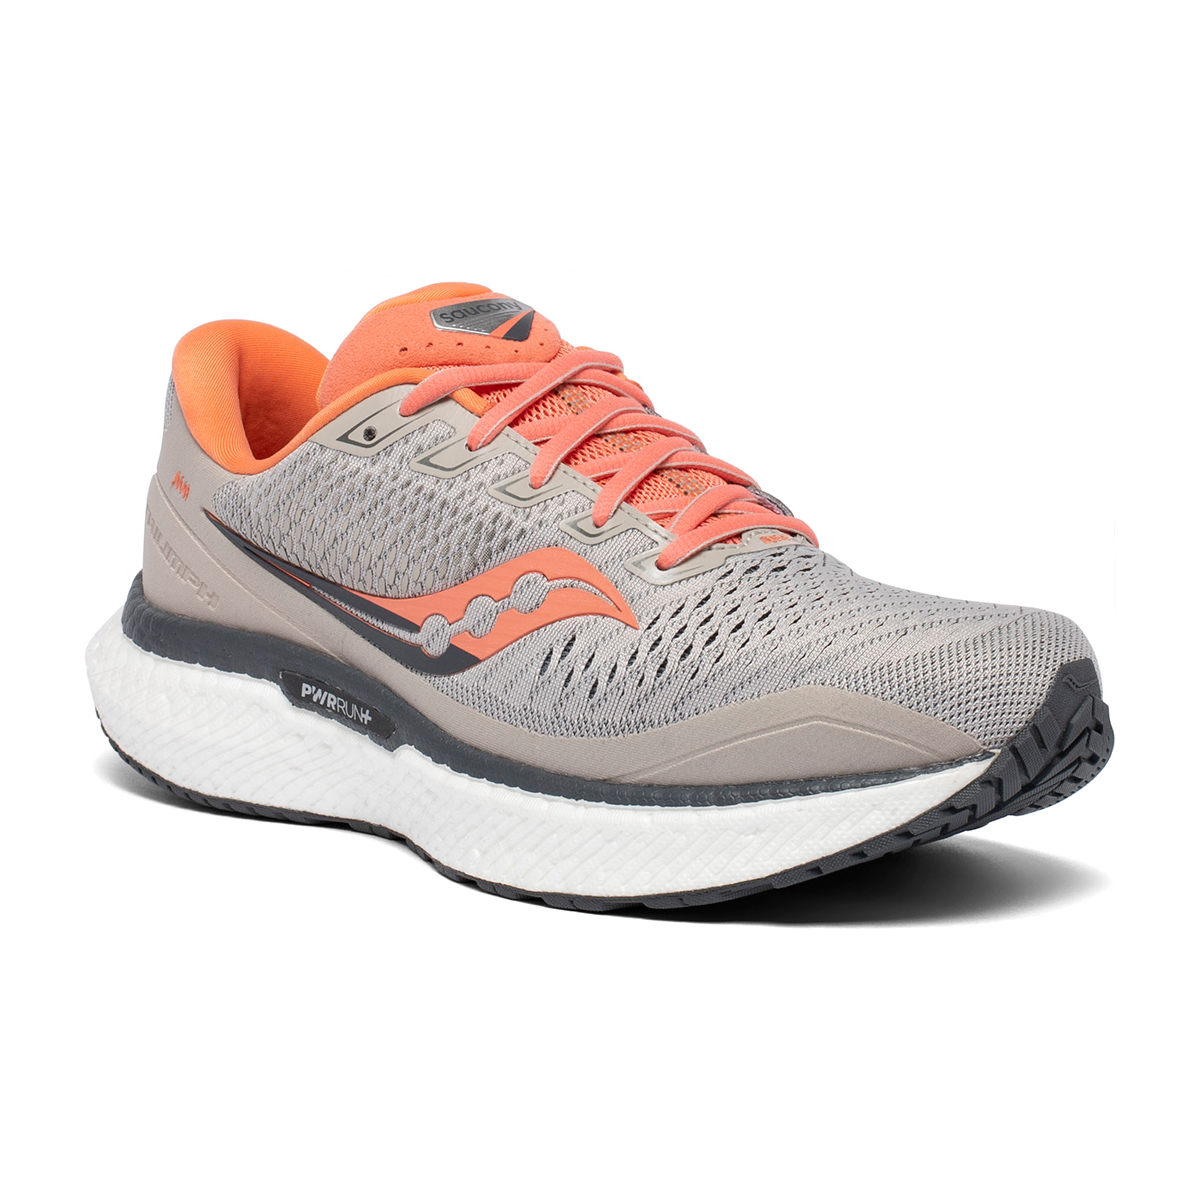 Women's Saucony Triumph 18 Running Shoe - Color: Moonrock/Coral - Size: 5 - Width: Regular, Moonrock/Coral, large, image 2